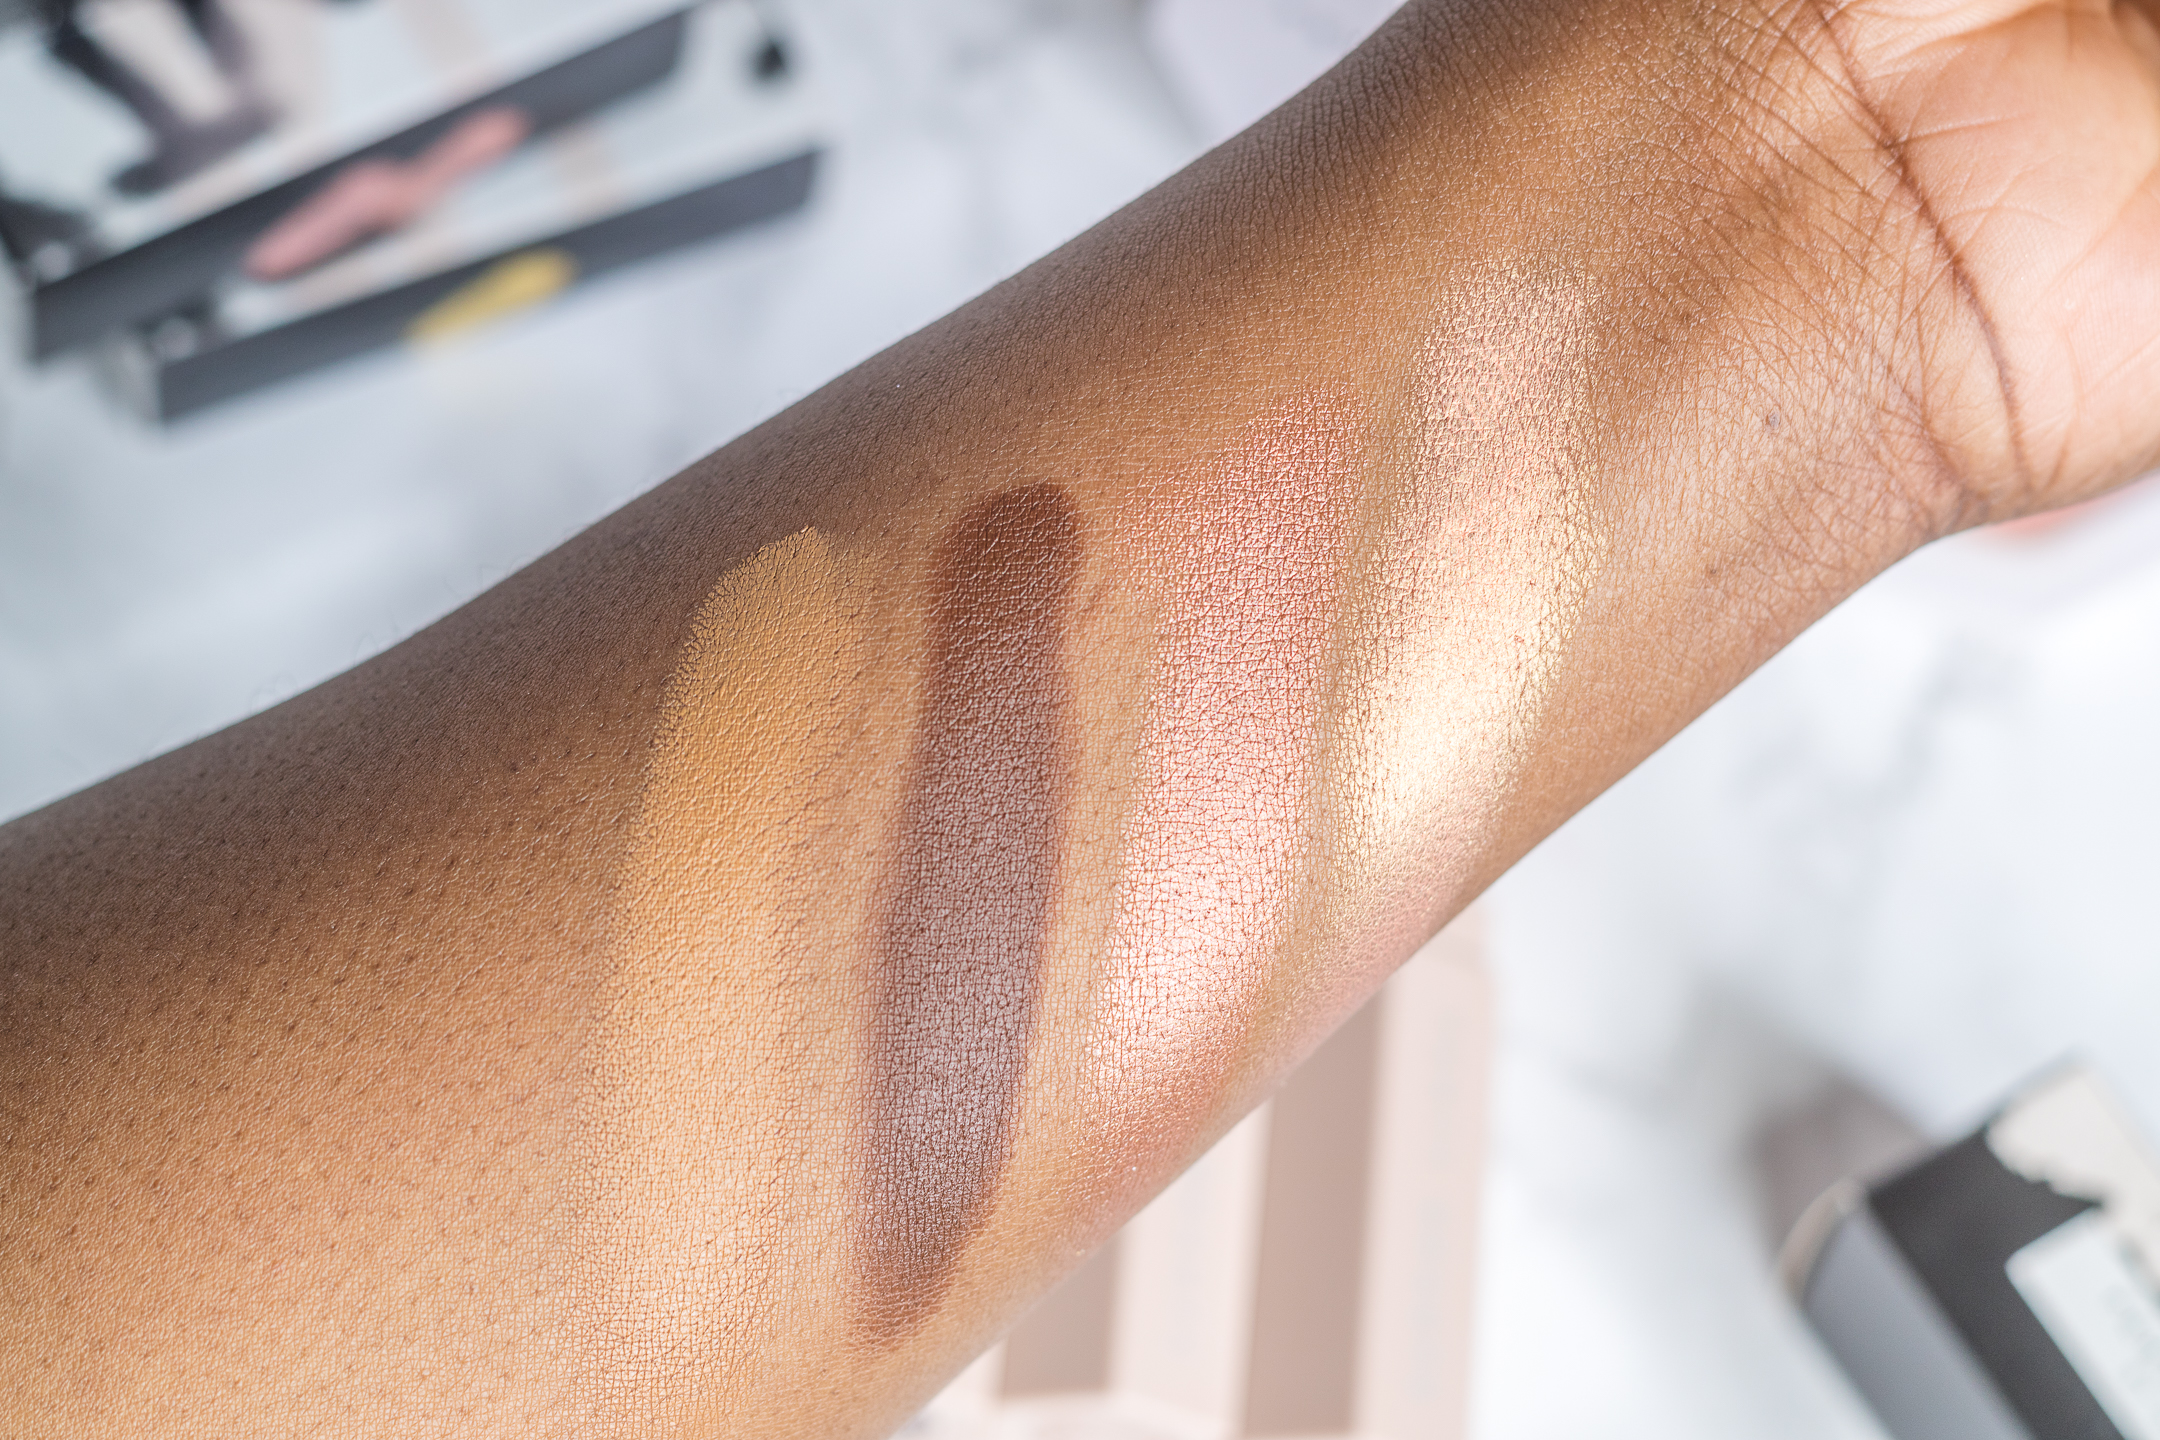 Match Stix Trio by Fenty Beauty #6